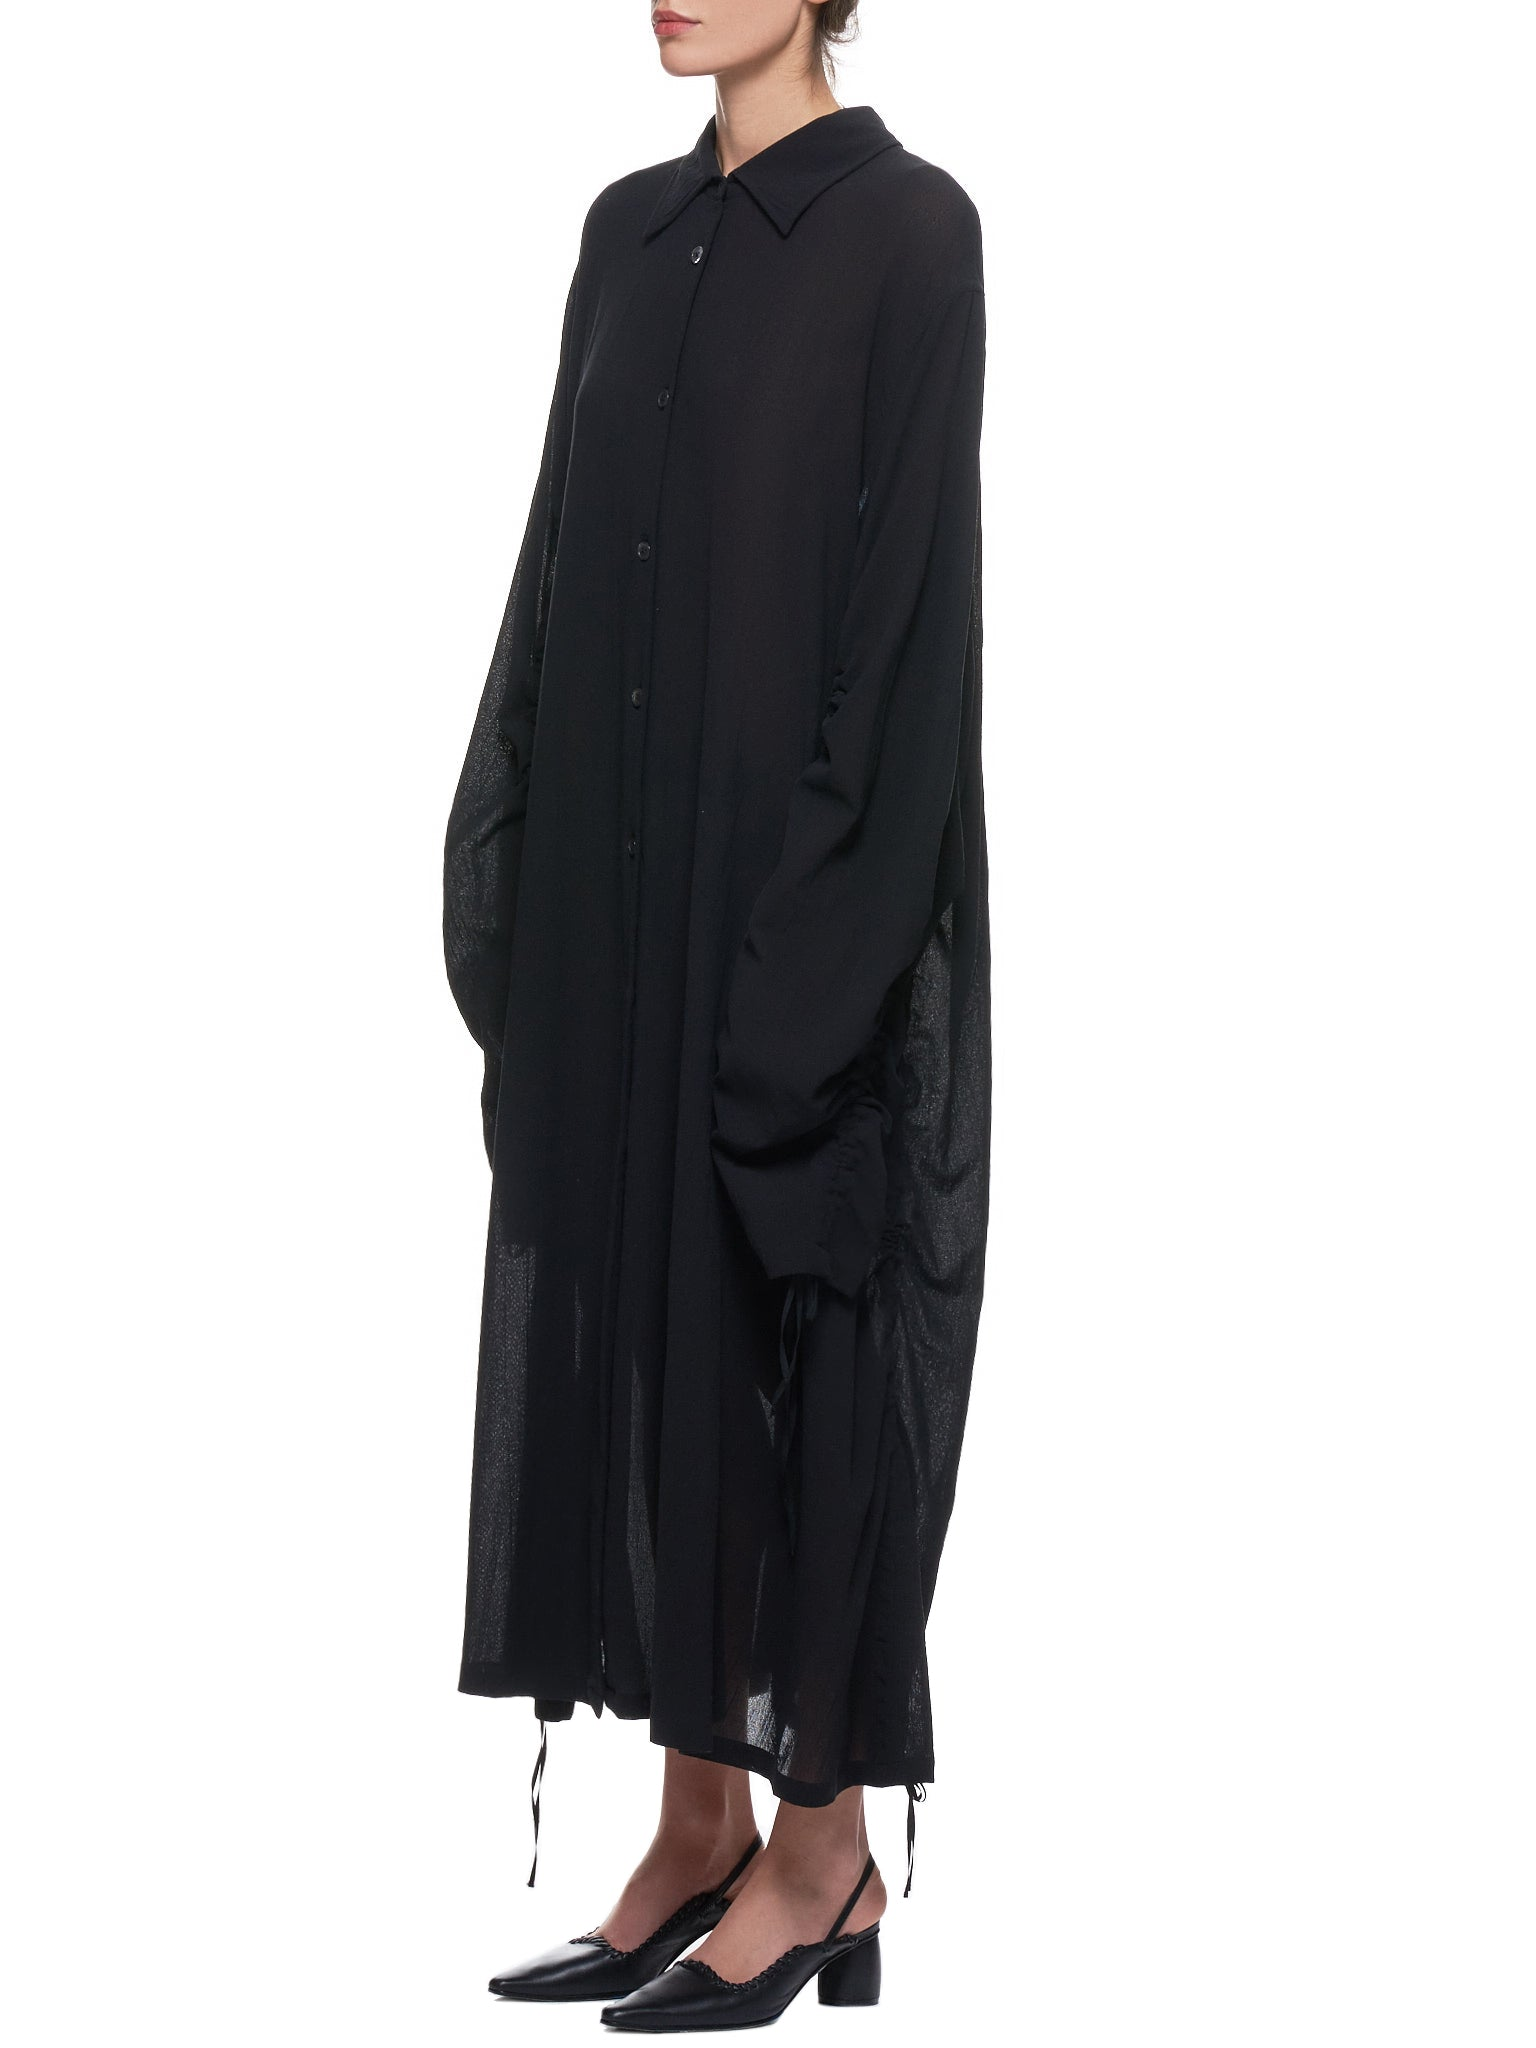 Oversized Shirt (1901-2032-172-099-BLACK)